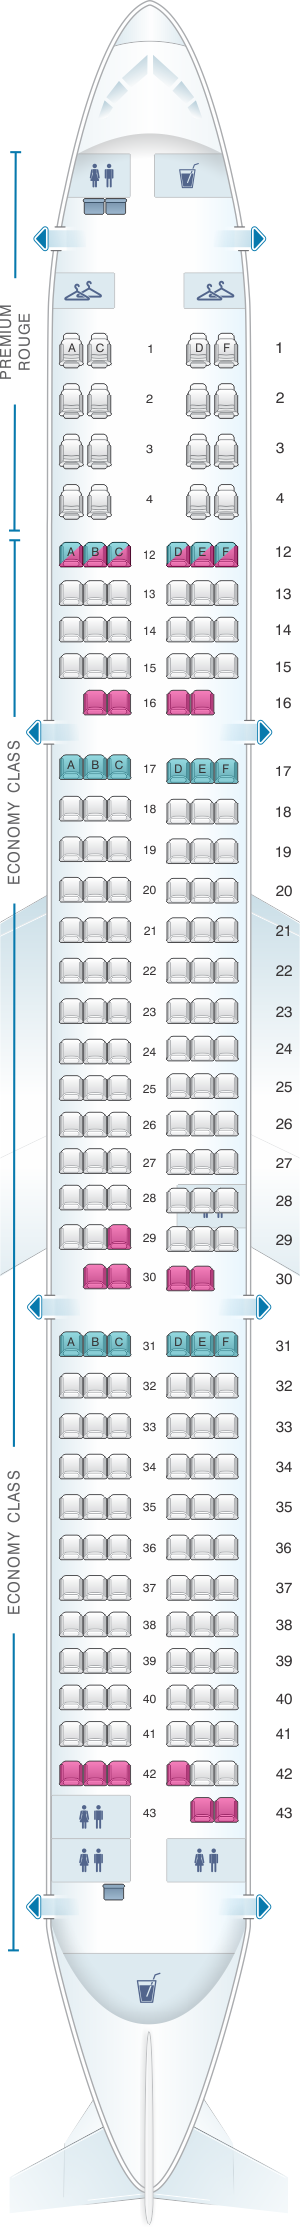 Air Canada 321 Seat Map Seat Map Air Canada Airbus A321 200 Rouge | SeatMaestro